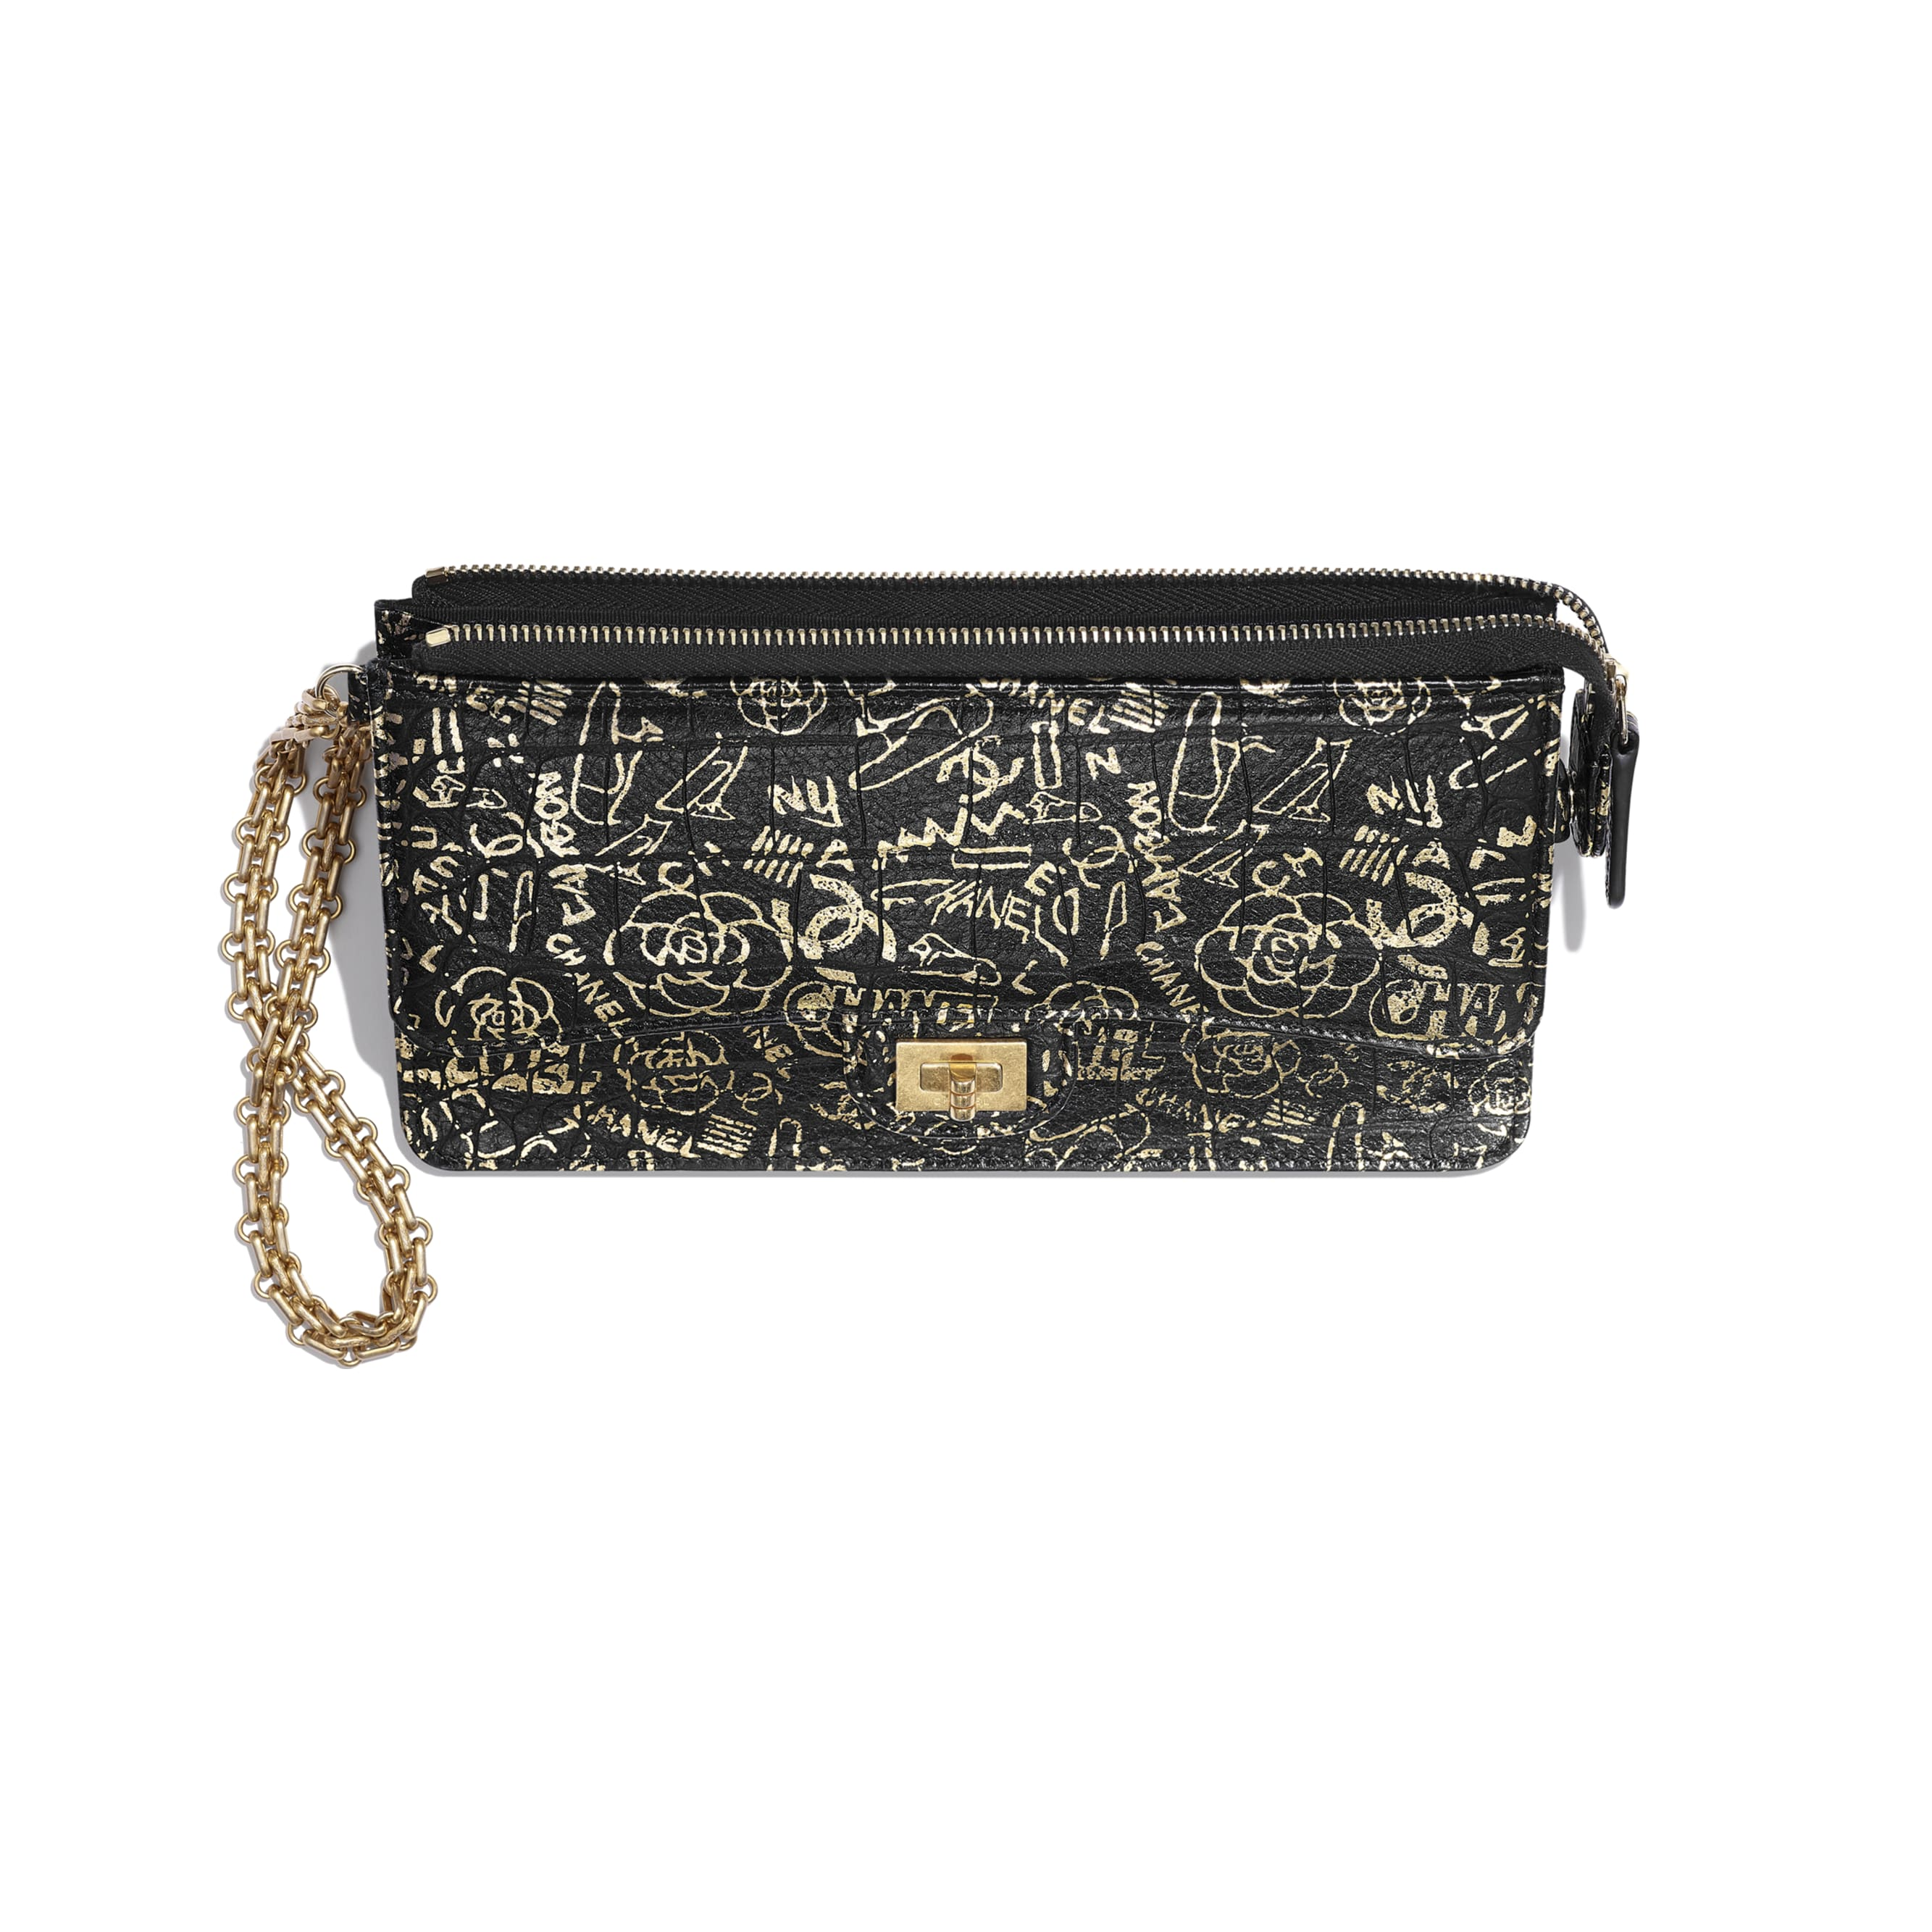 2.55 Pouch With Handle - Black & Gold - Crocodile Embossed Printed Leather & Gold-Tone Metal - Other view - see standard sized version